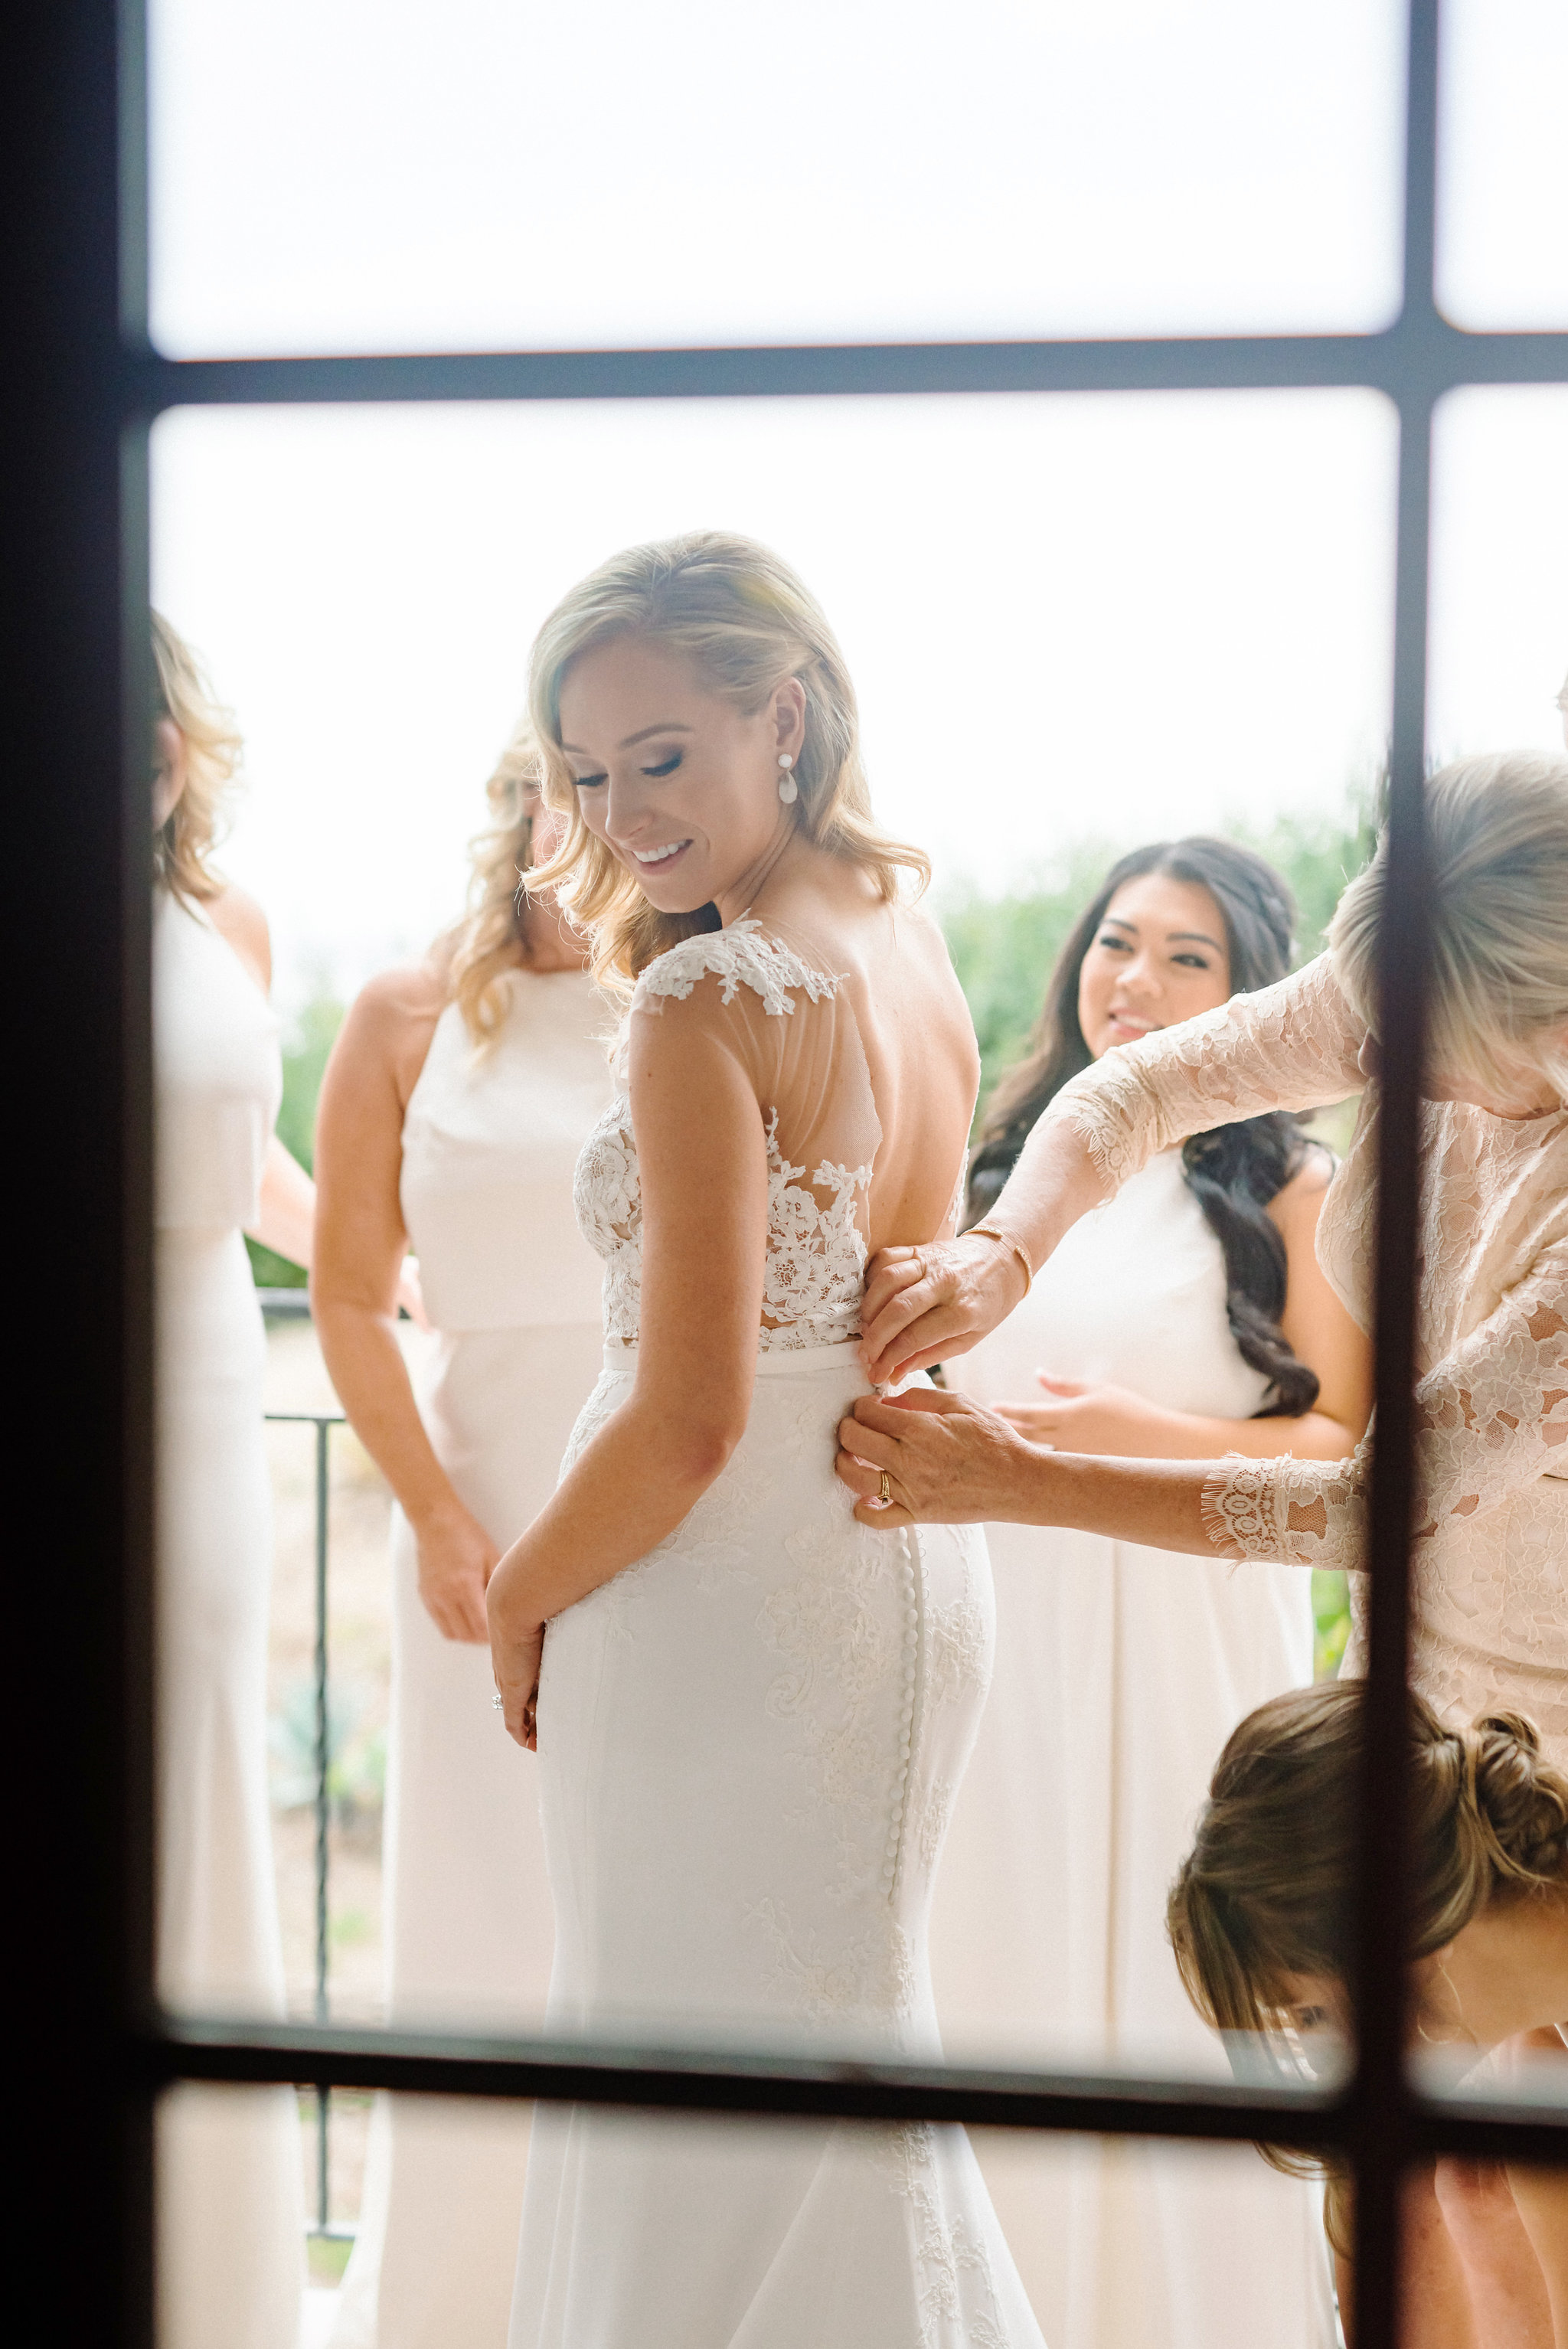 bride-getting_ready-photos-NicoleandRyanWedding-79.jpg